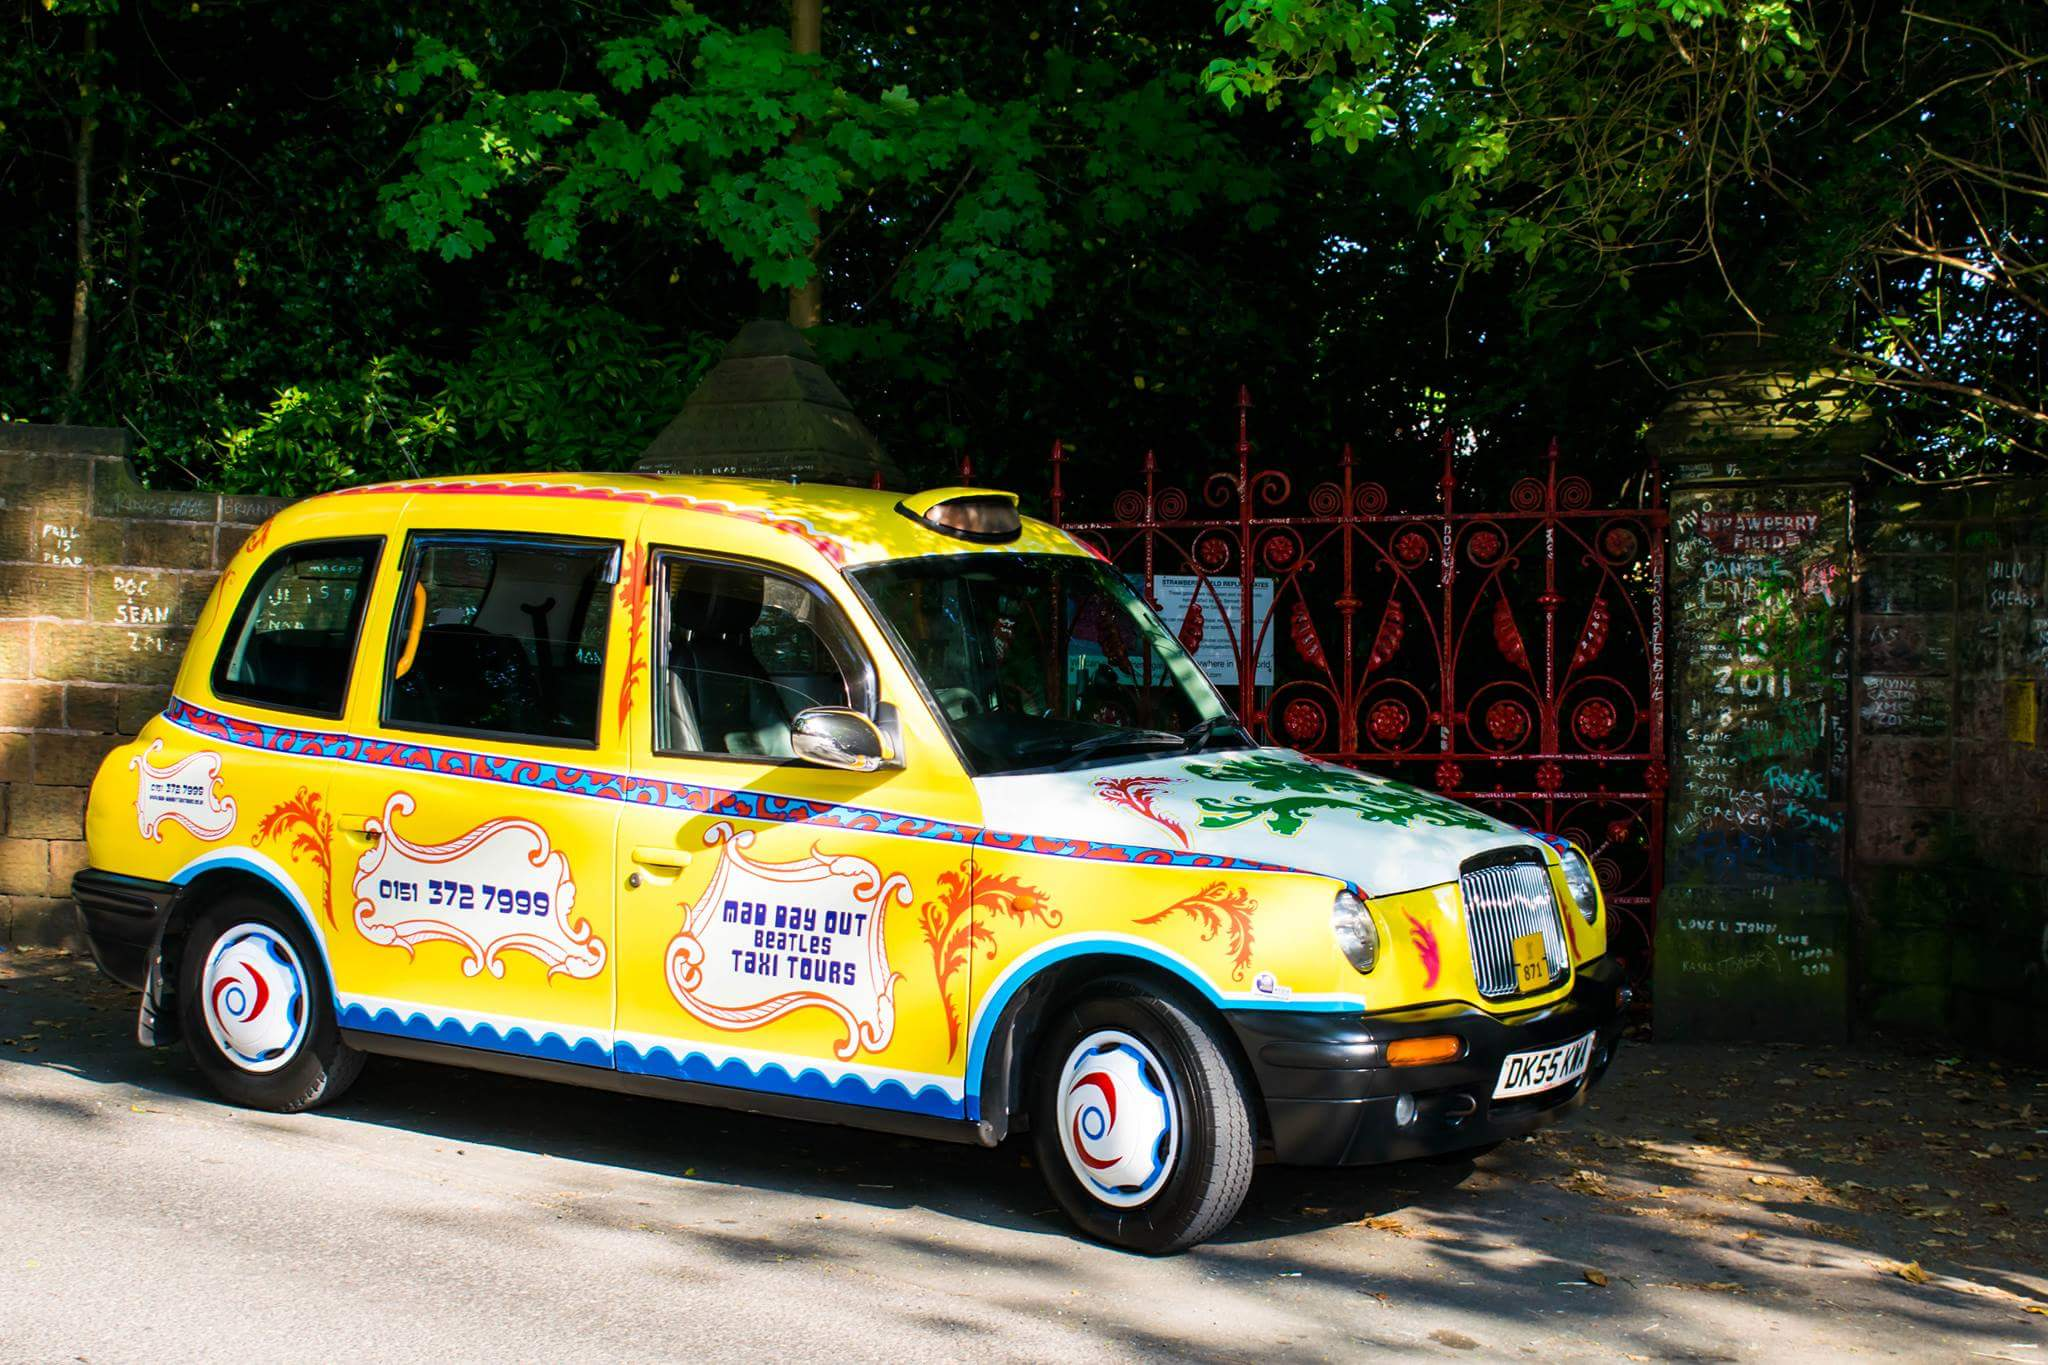 Beatles Taxi Tours Of Liverpool